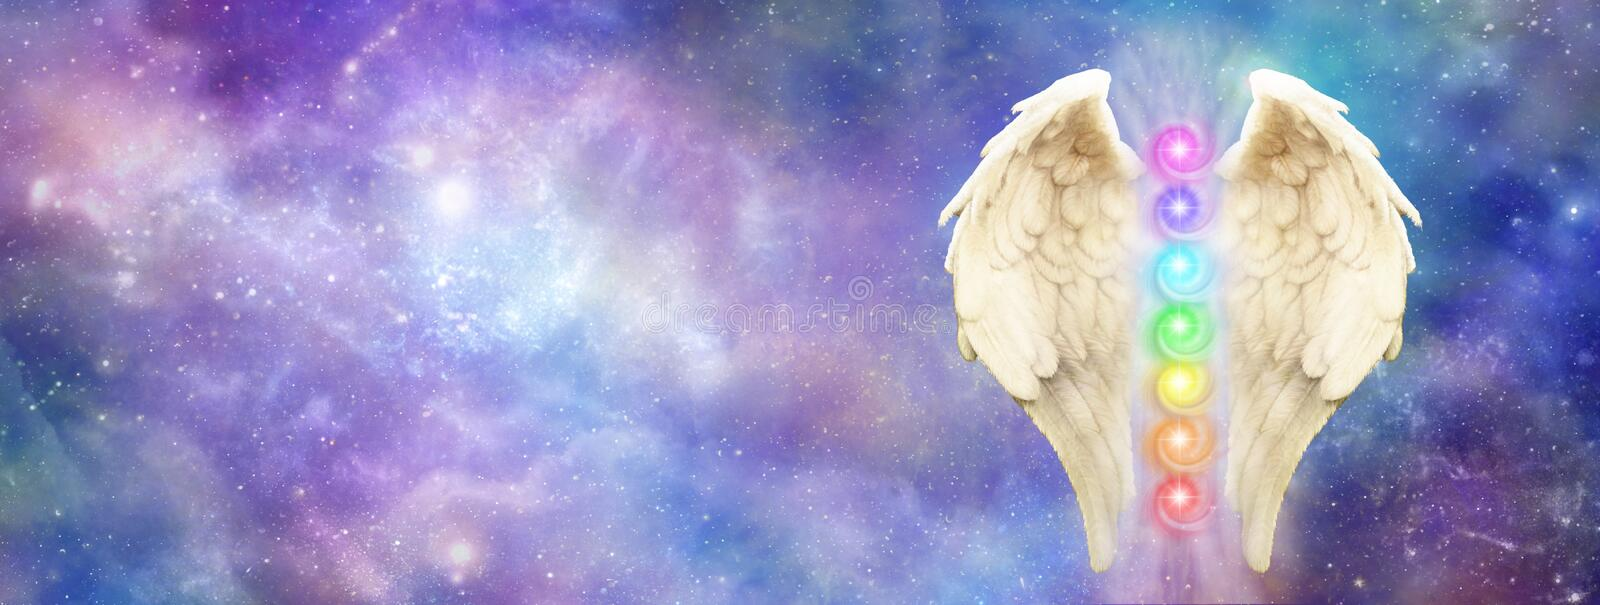 Angelic Cosmic Guardian Website Banner foto de archivo libre de regalías